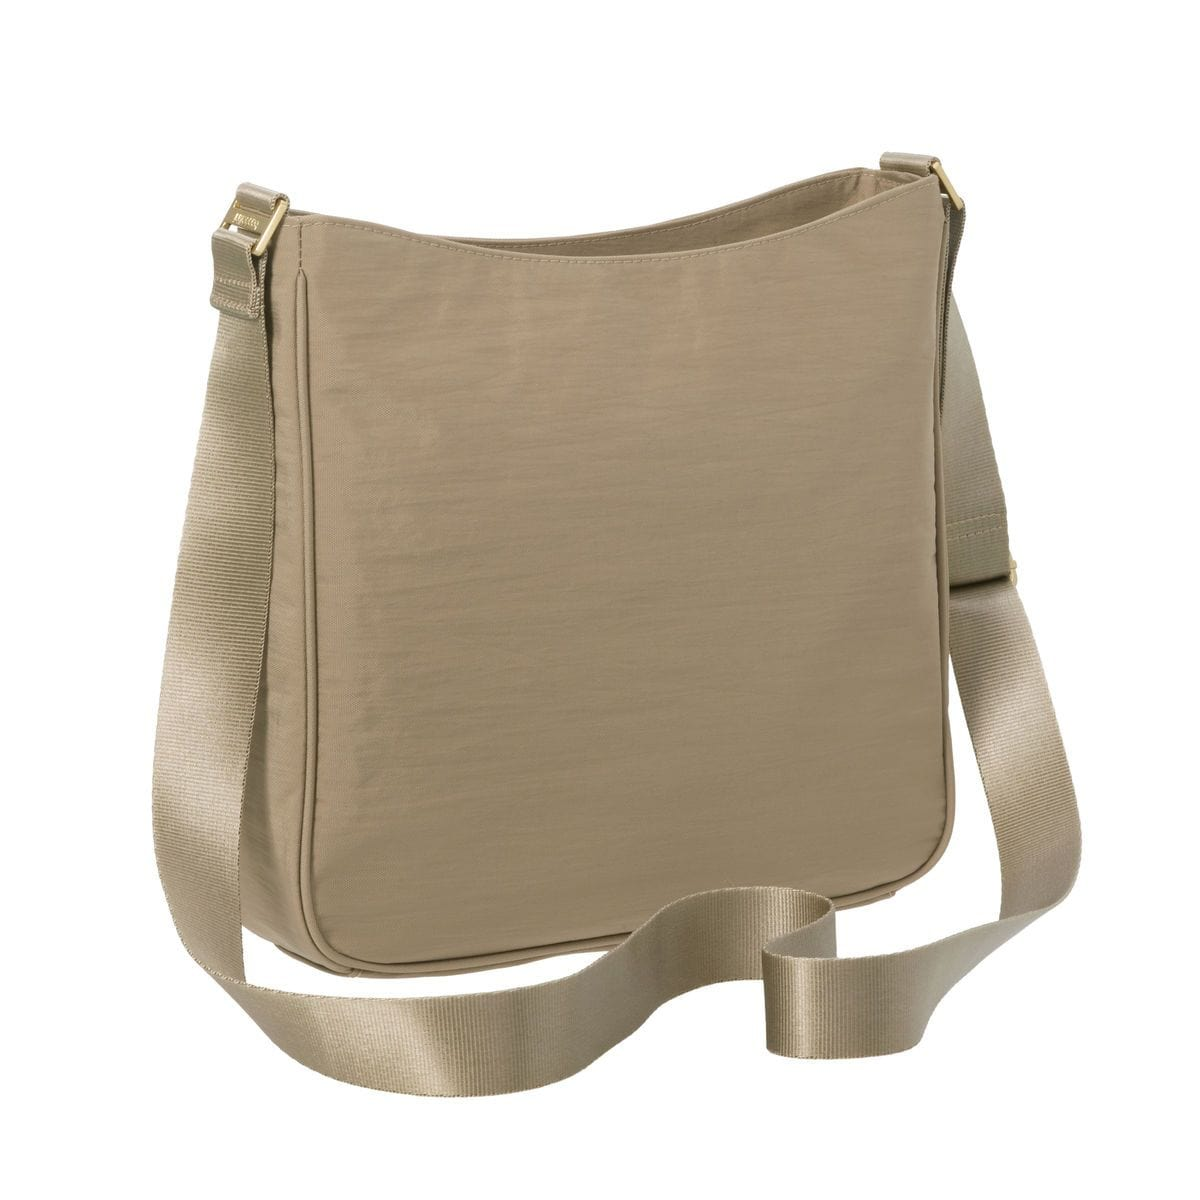 Baggallini Fabric Purse | Antalya Top Zip Crossbody (ATC289) | Simons